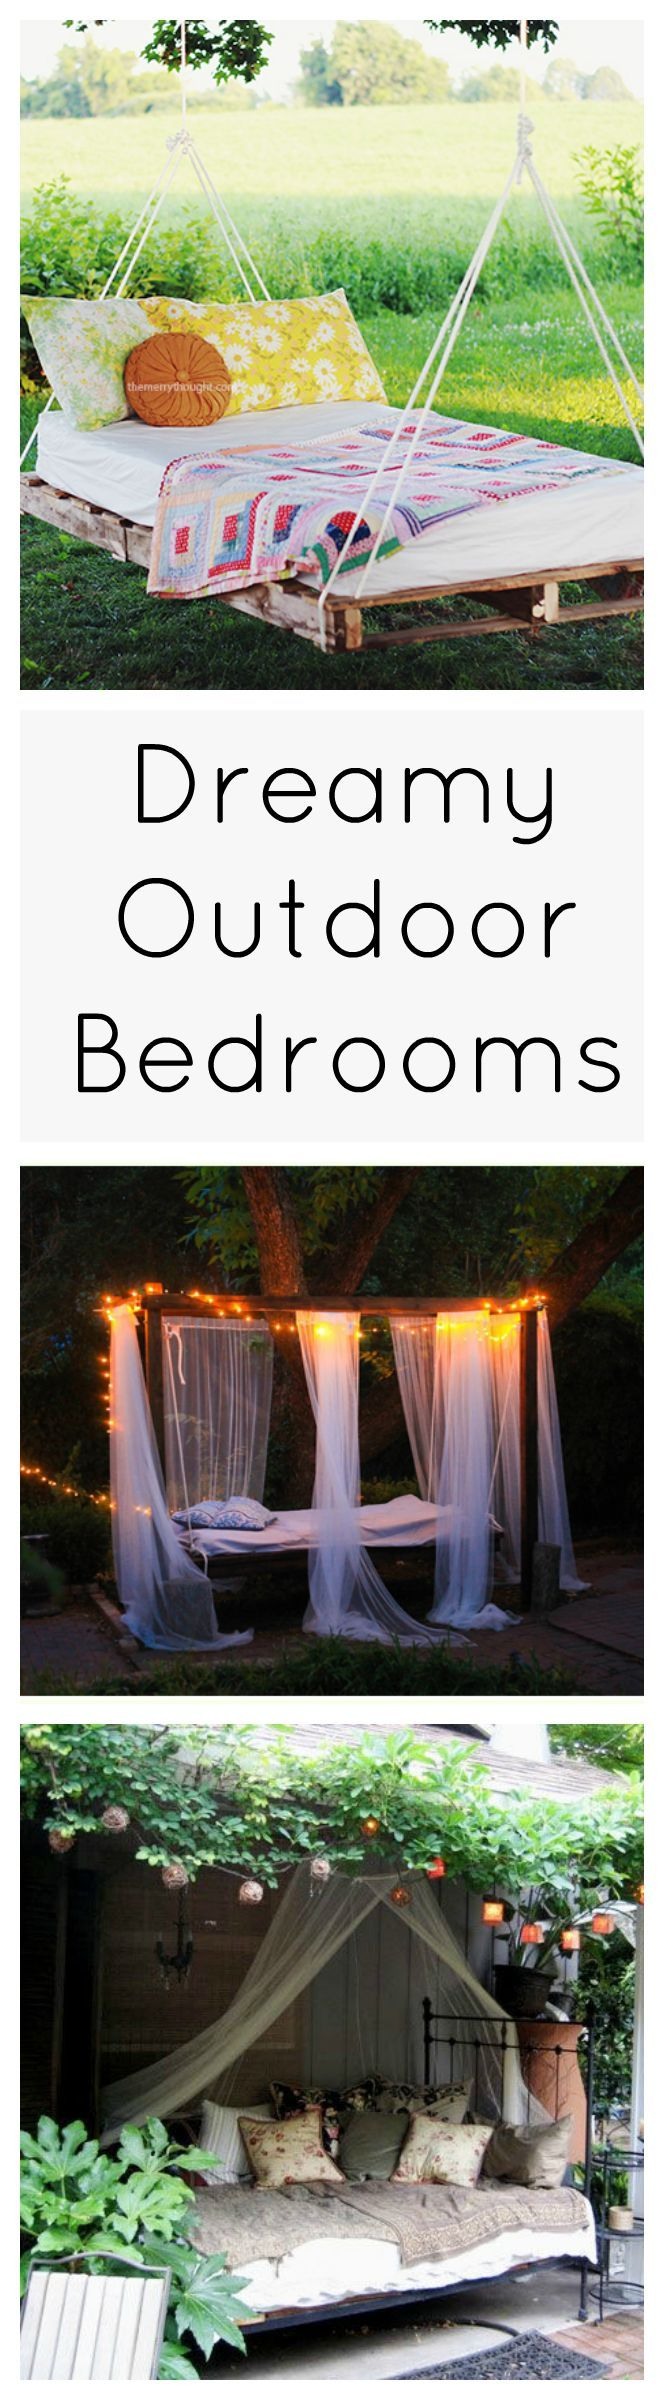 Fresh air makes for a better night's sleep, so why not just go to bed outside? These gorgeous outdoor bedrooms will inspire you to create your own al fresco spot to slumber the night away or just grab a few winks on a lazy afternoon.